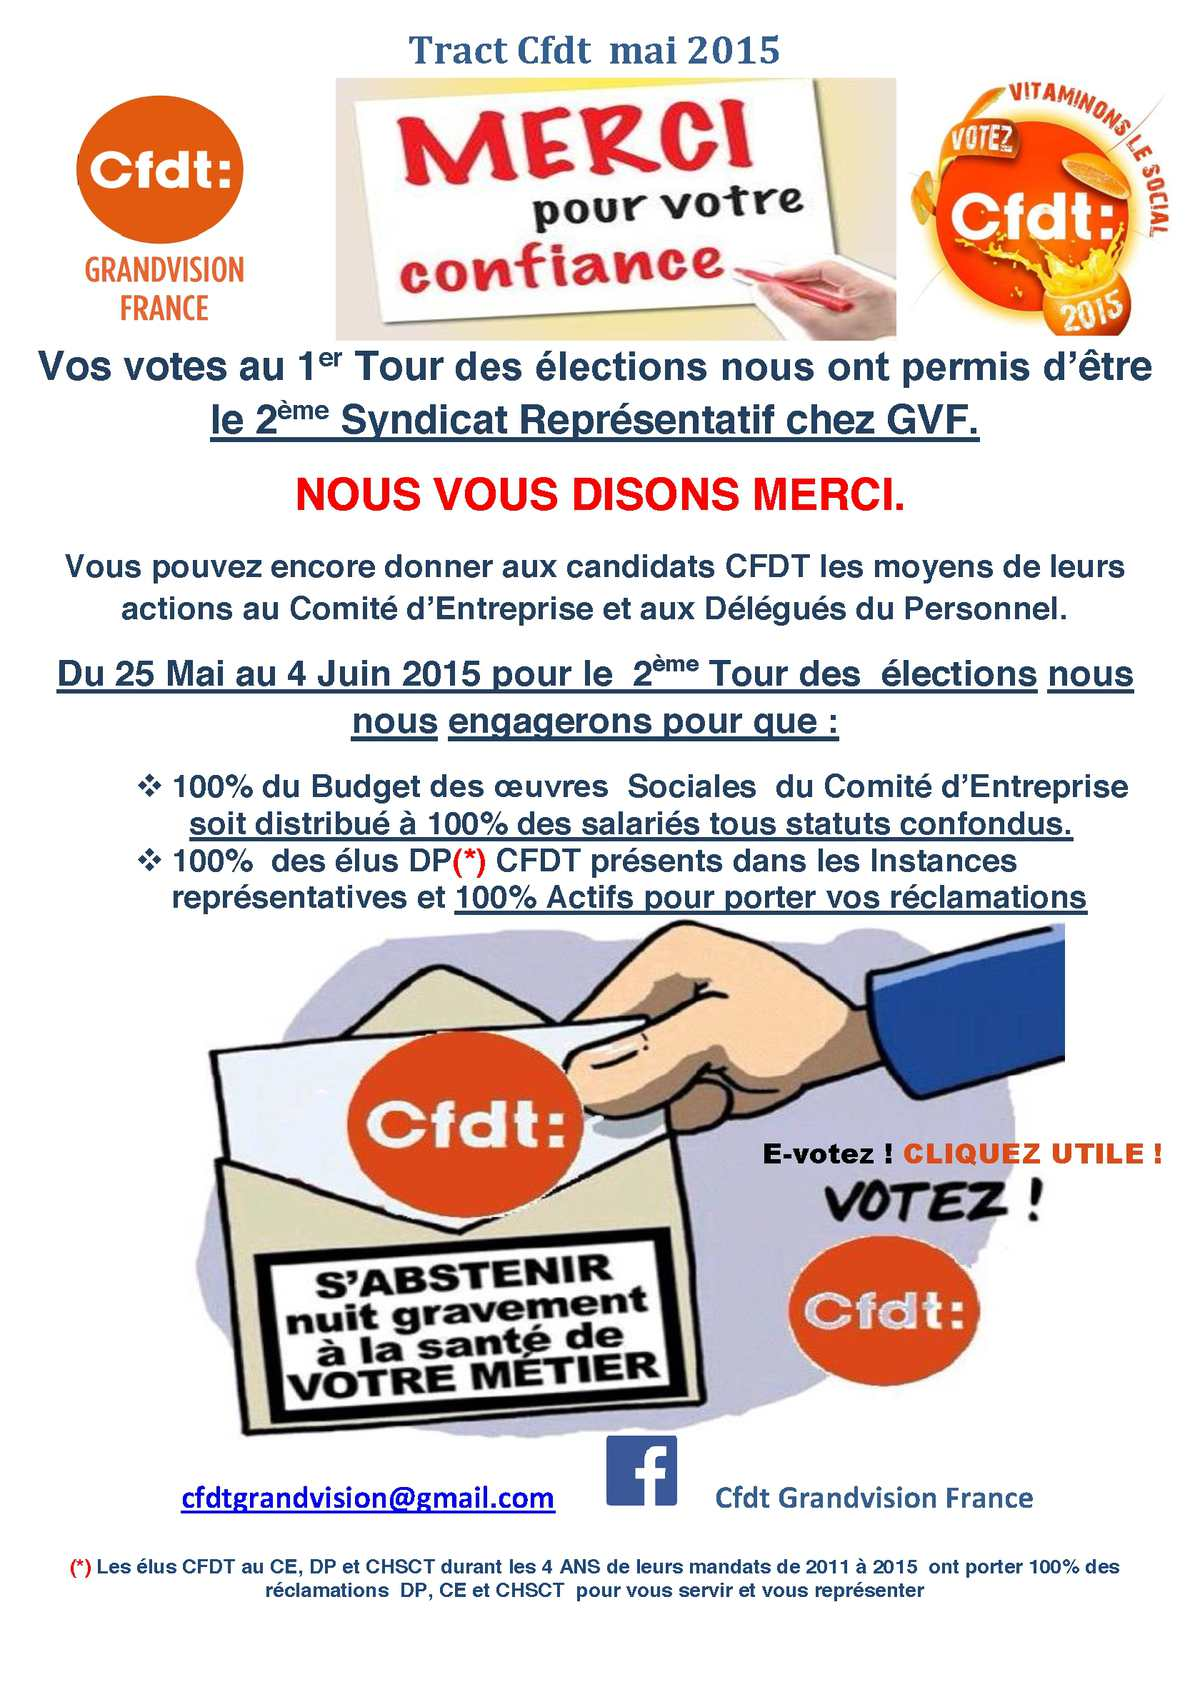 Calam o tract cfdt de mai 2015 1 for Election chsct